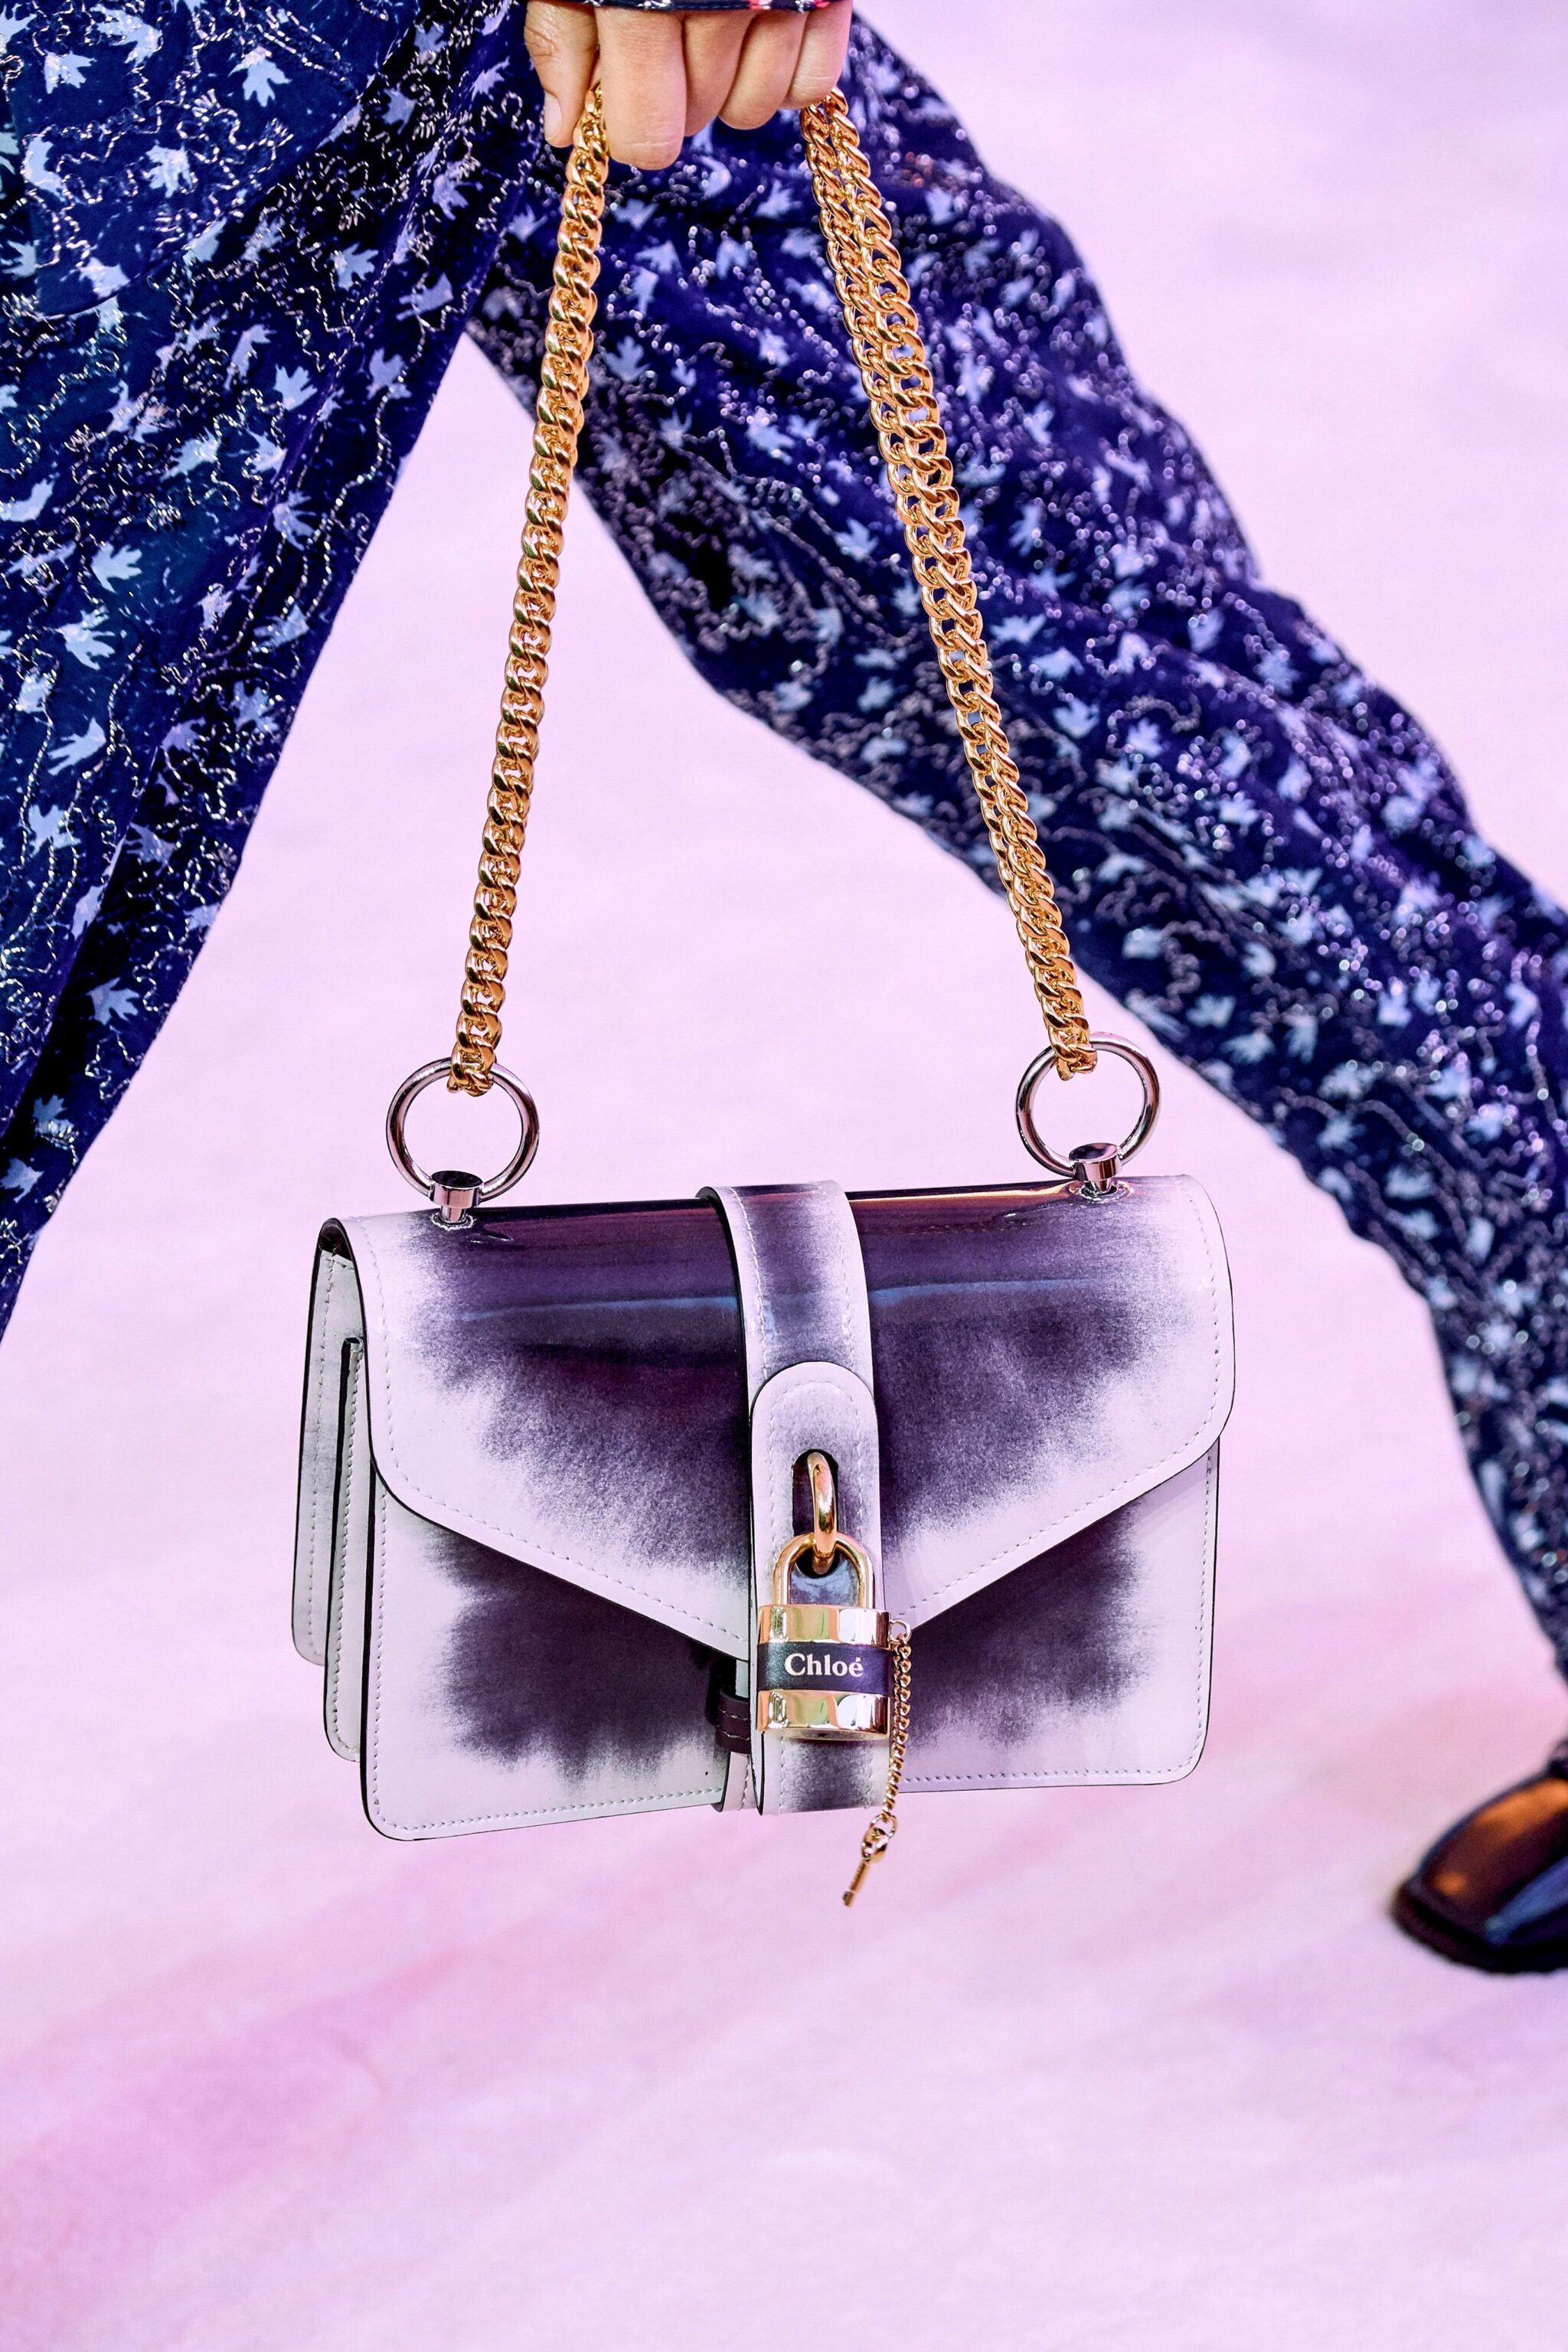 Chloe FallWinter 2019 Runway Bag Collection Spotted Fashion